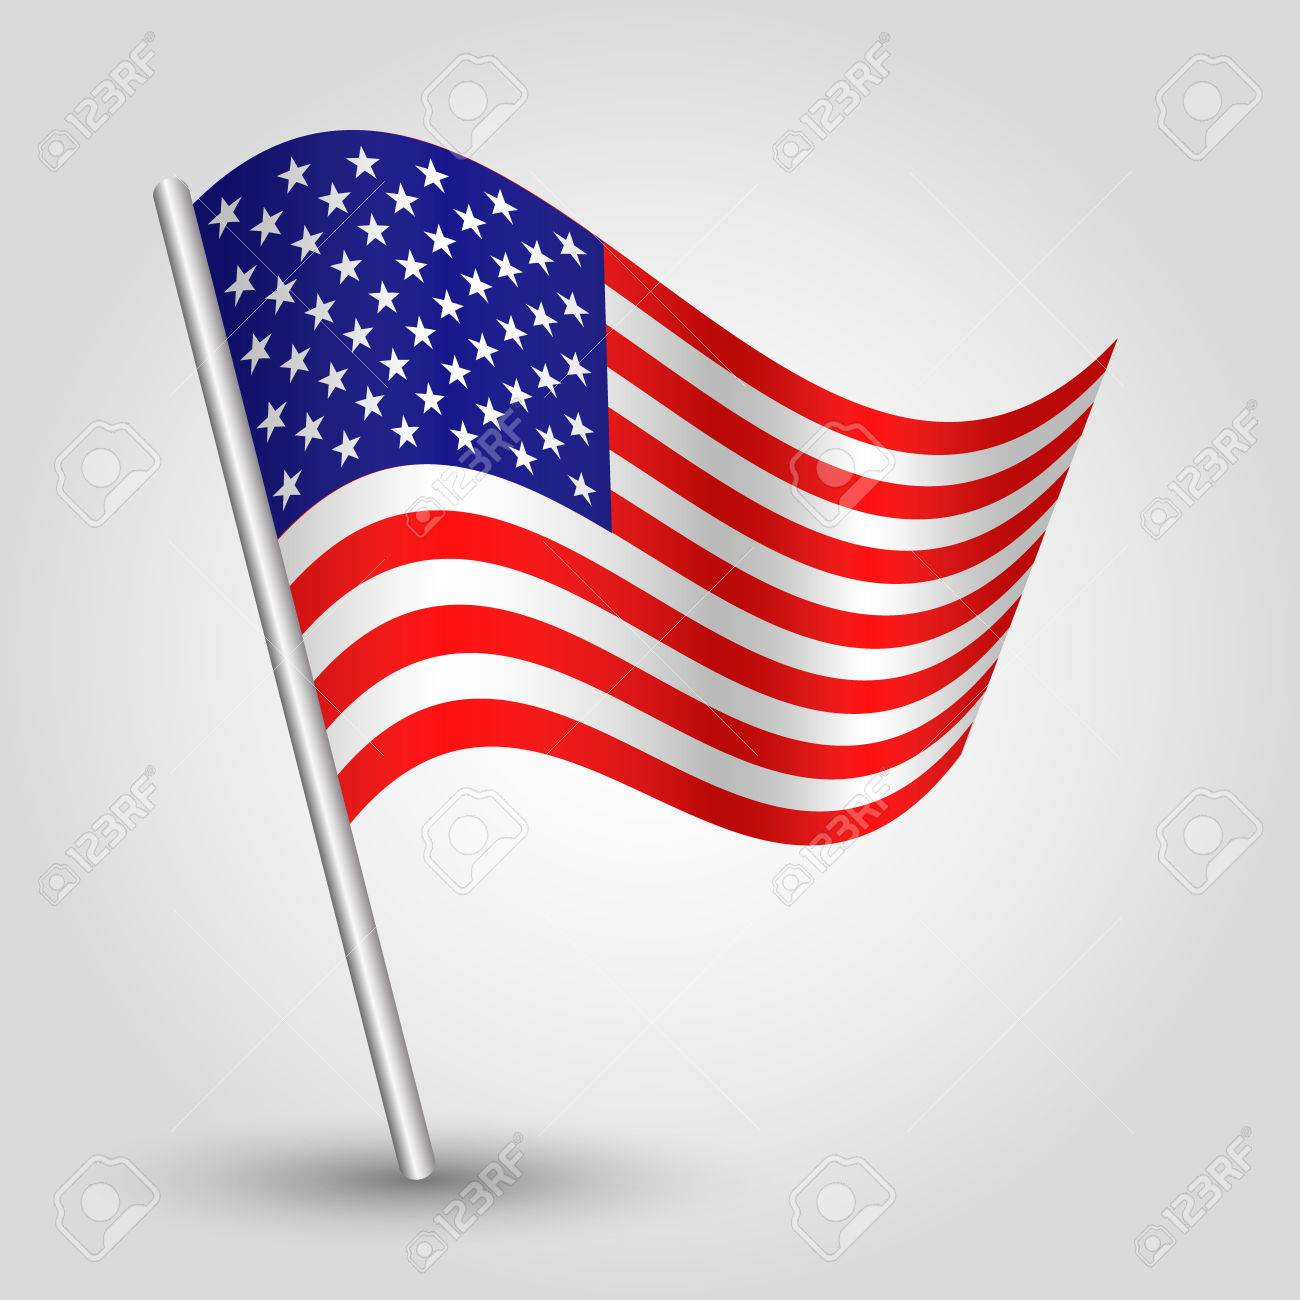 be091635dee8 Vector - vector 3d waving american flag on pole - national symbol of United  States of America USA with inclined metal stick